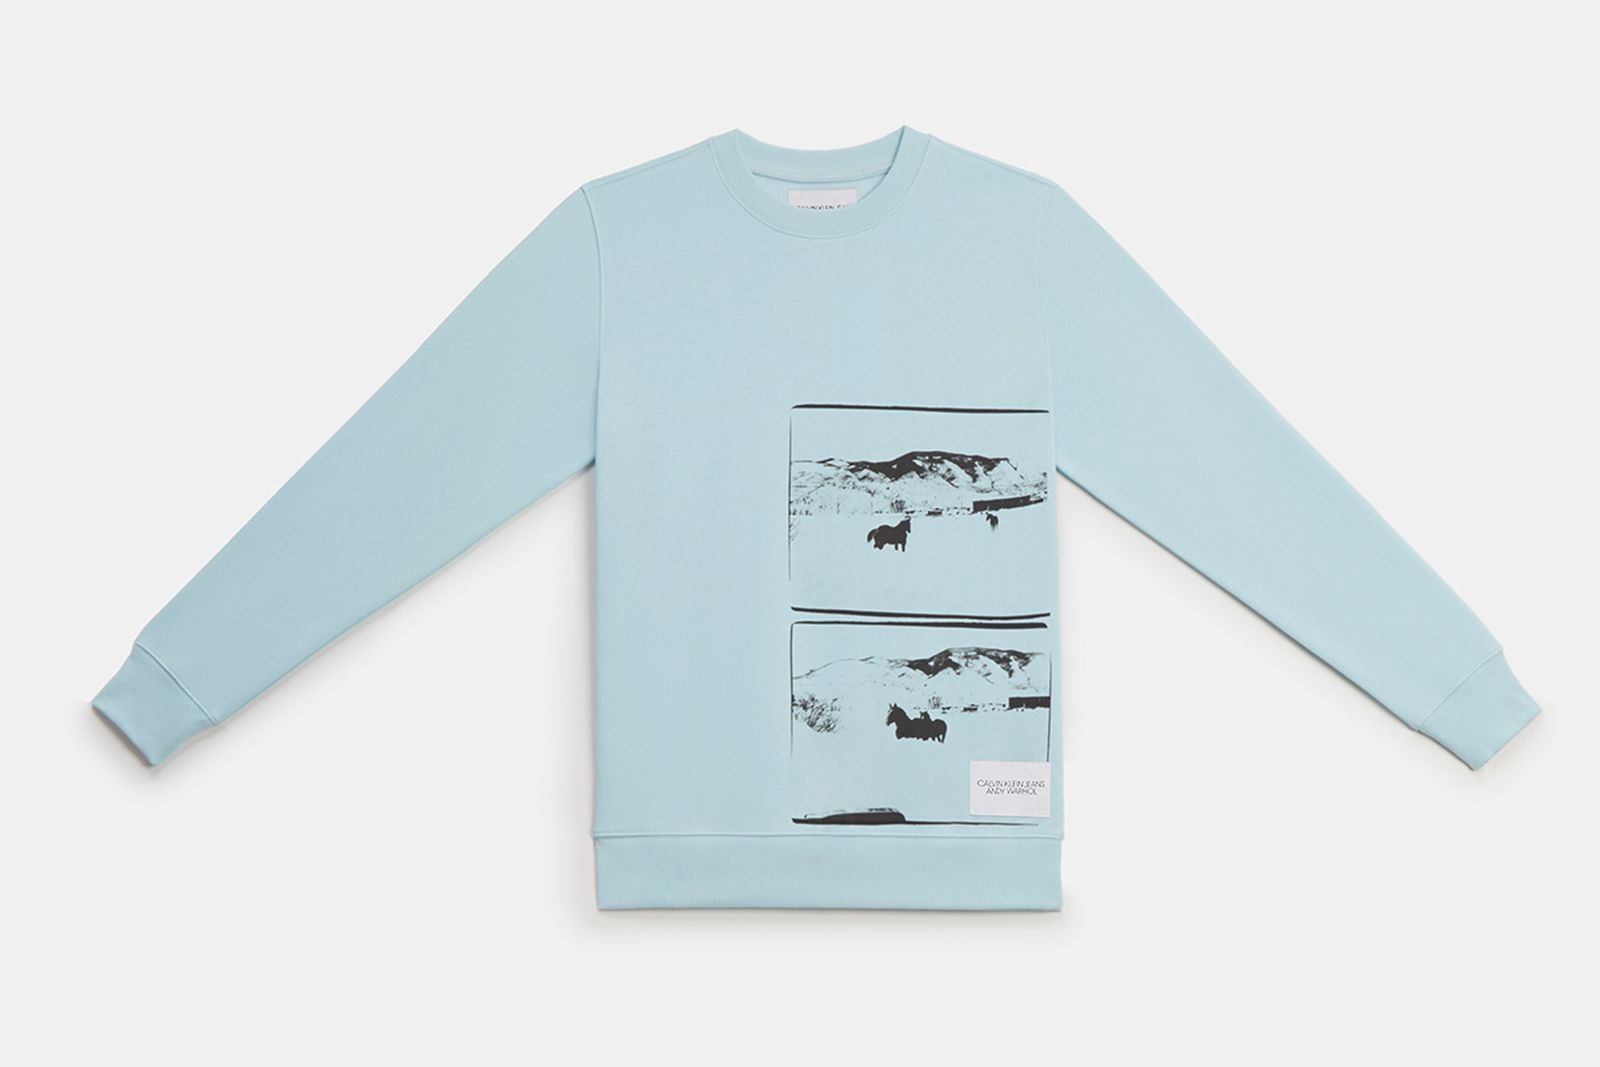 calvin klein jeans landscapes The Andy Warhol Foundation